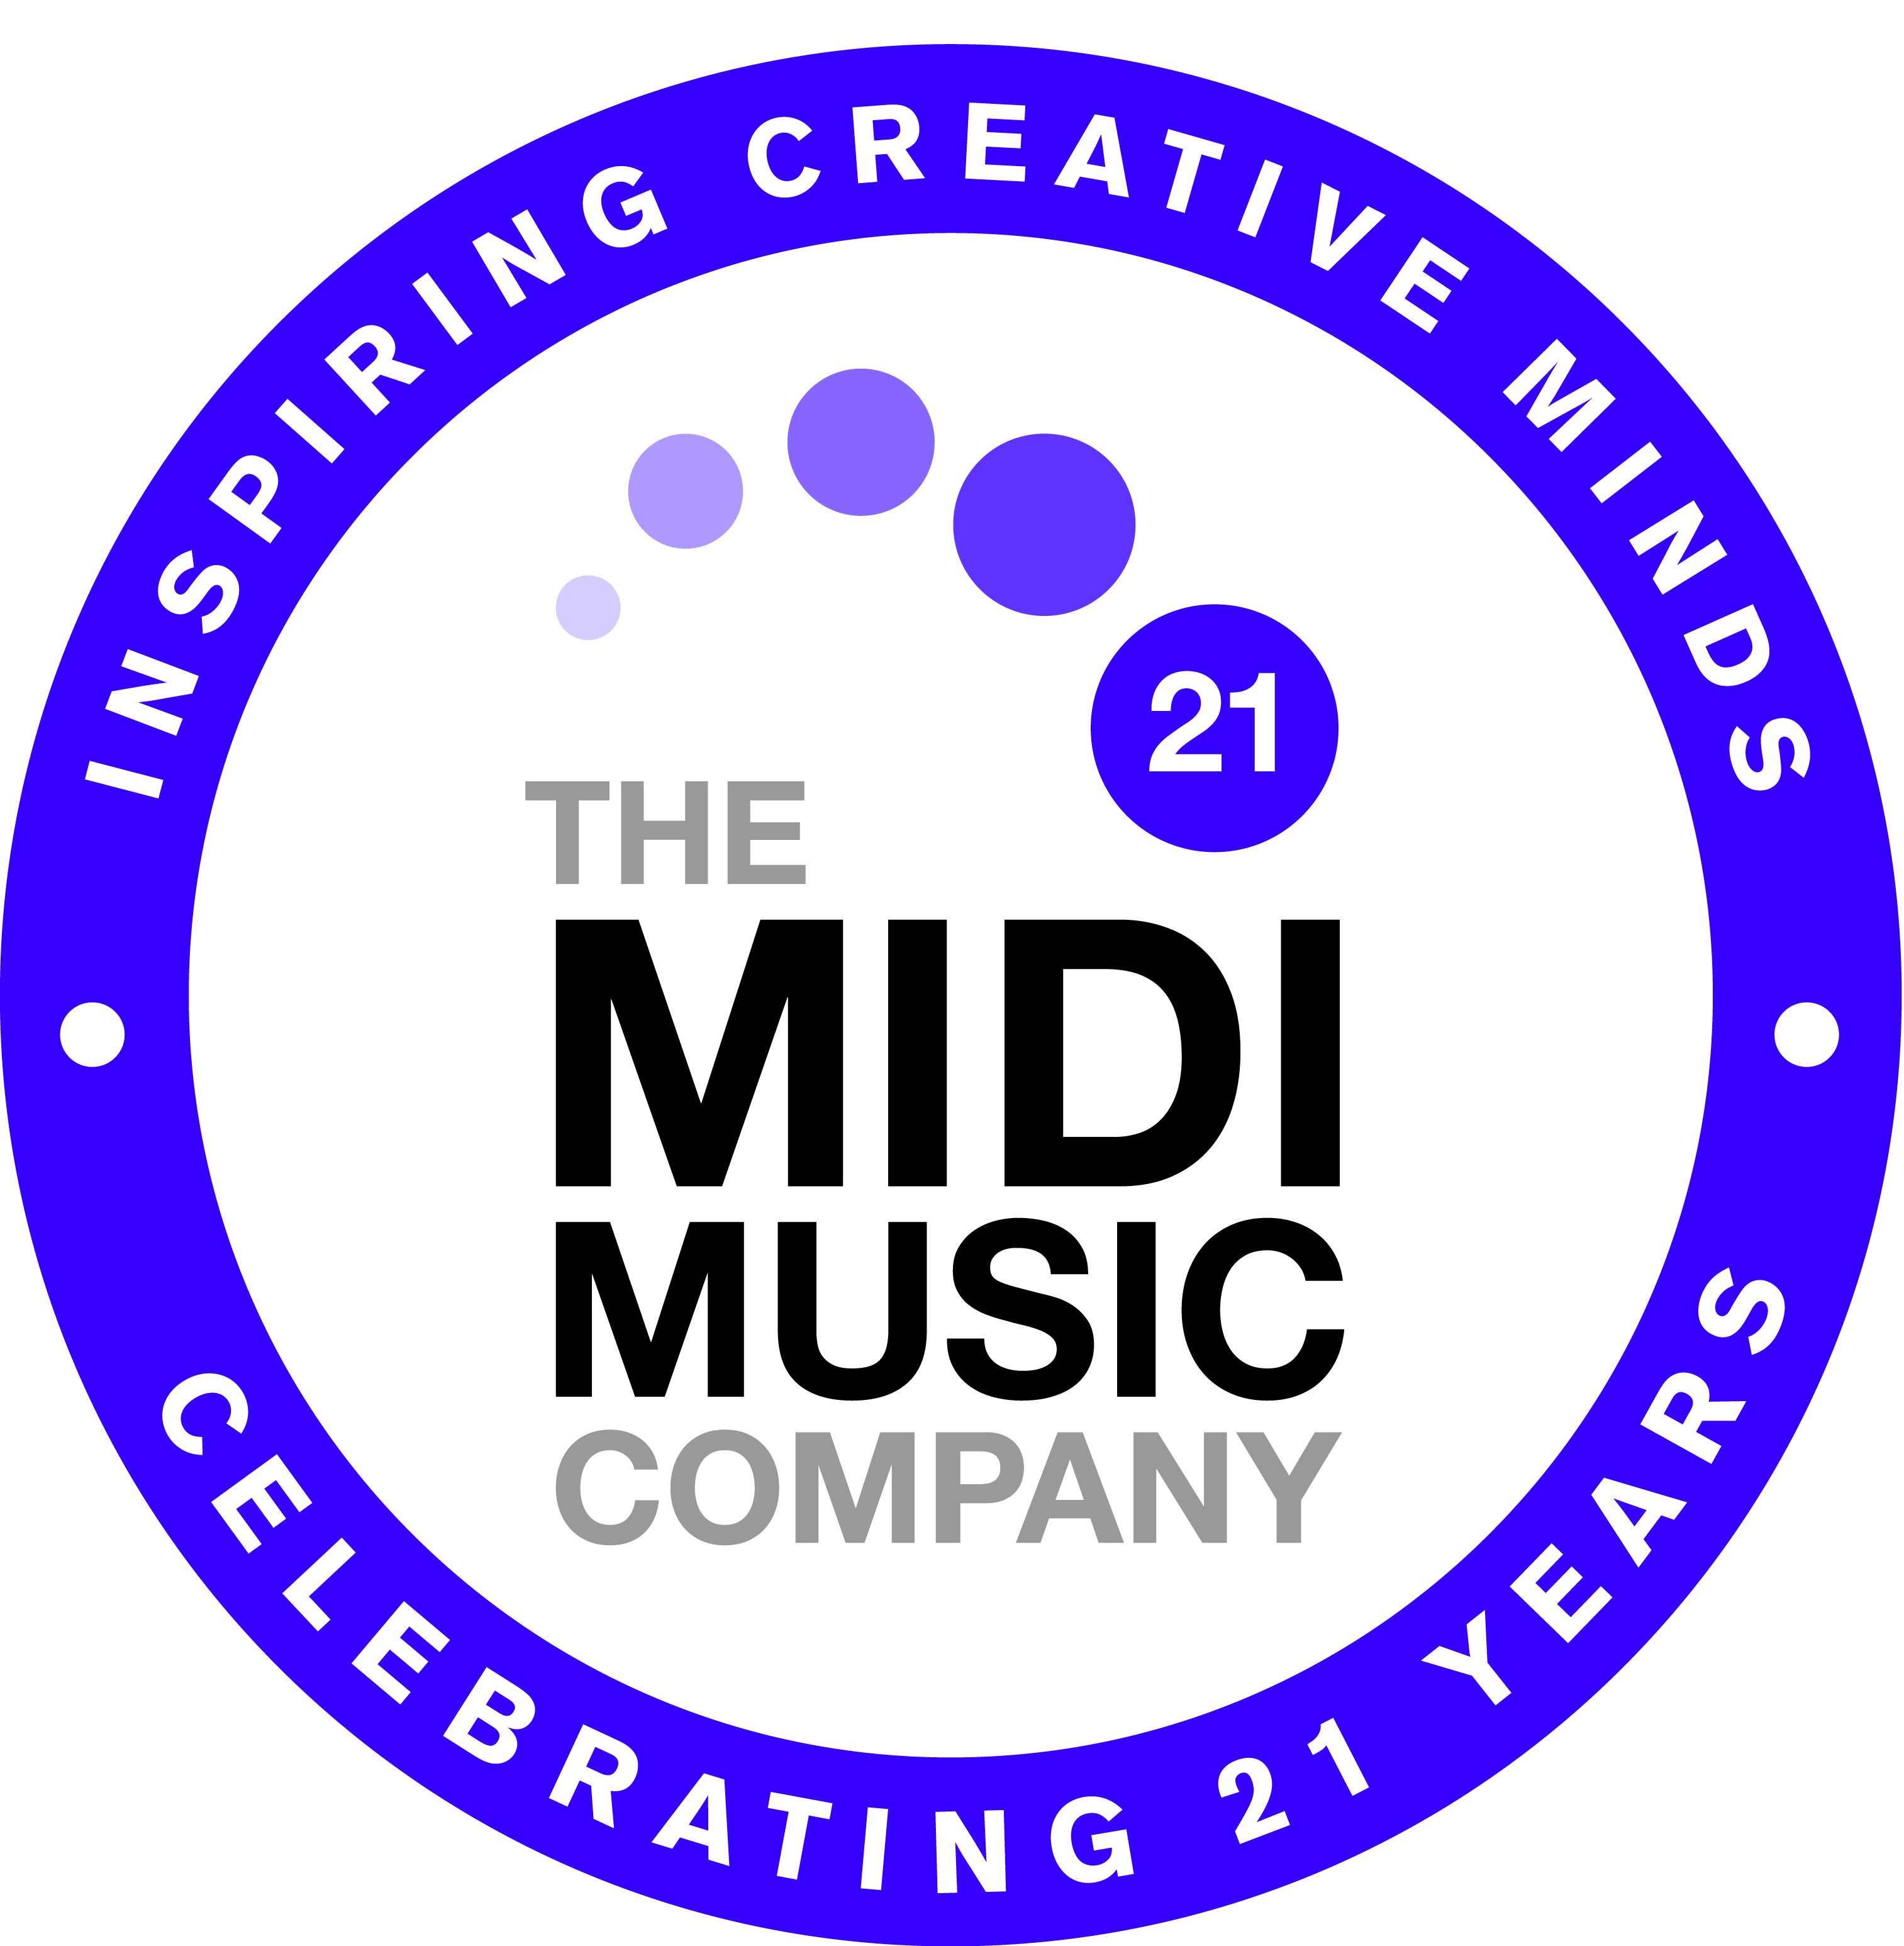 Midi Music Company (The)